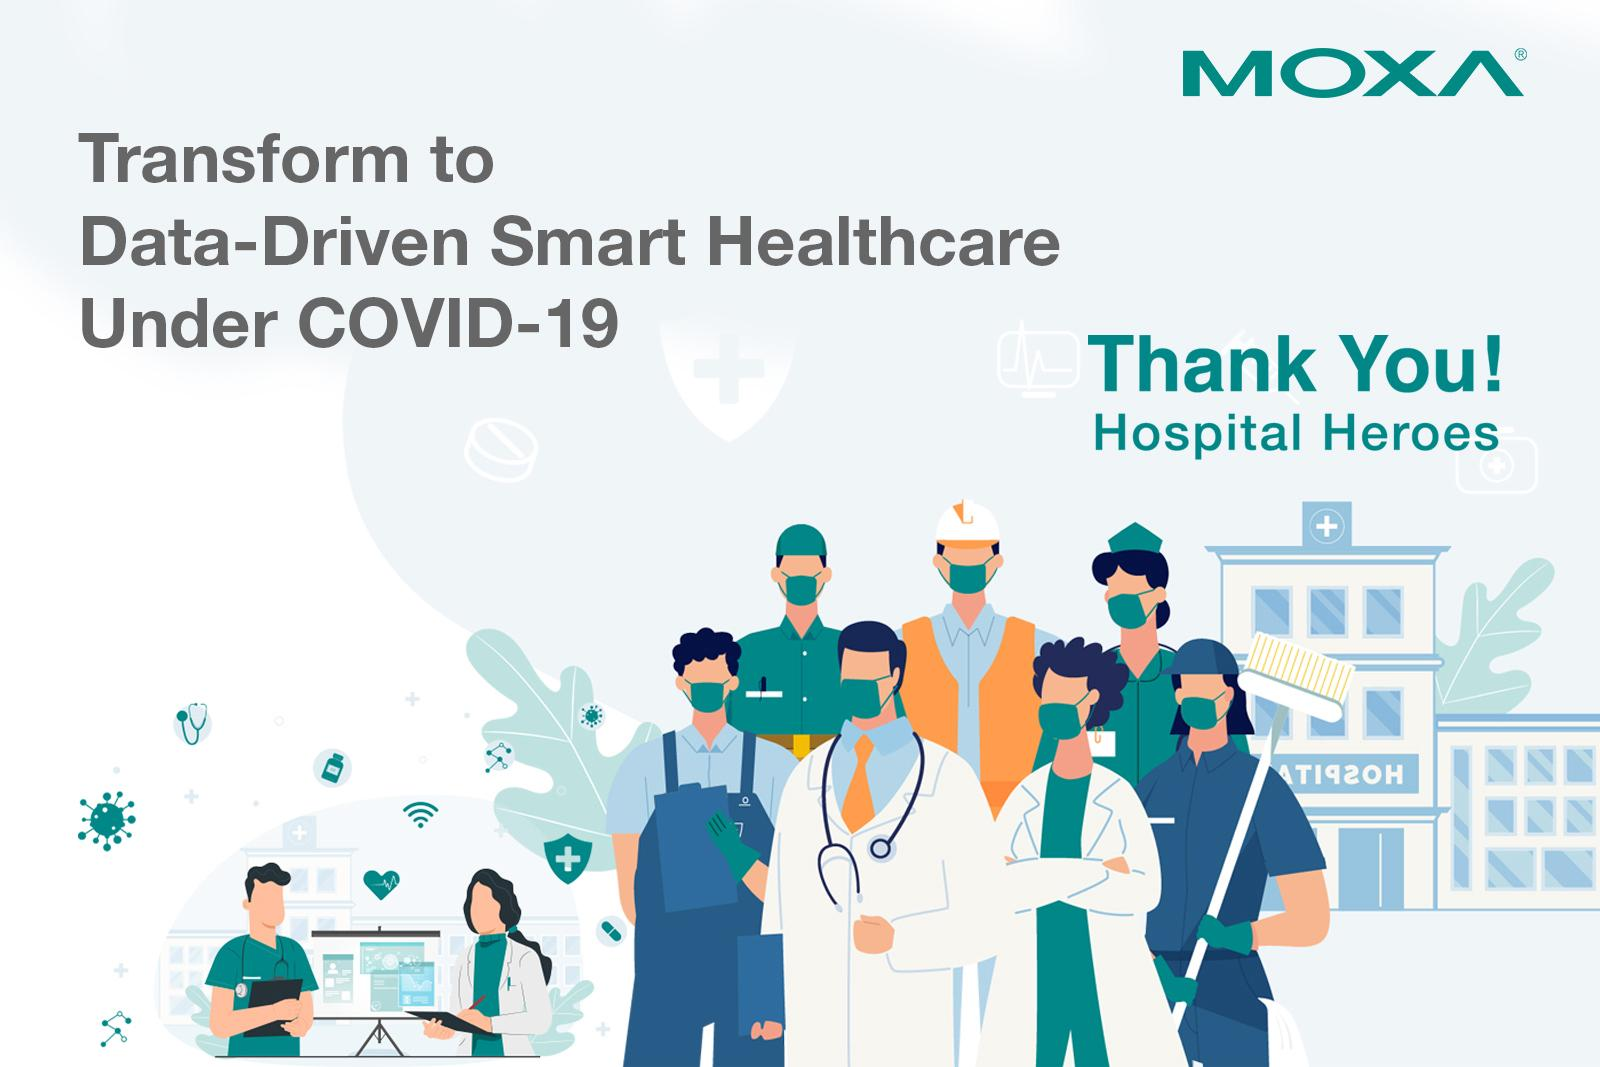 Transform to Data-Driven Smart Healthcare Under COVID-19